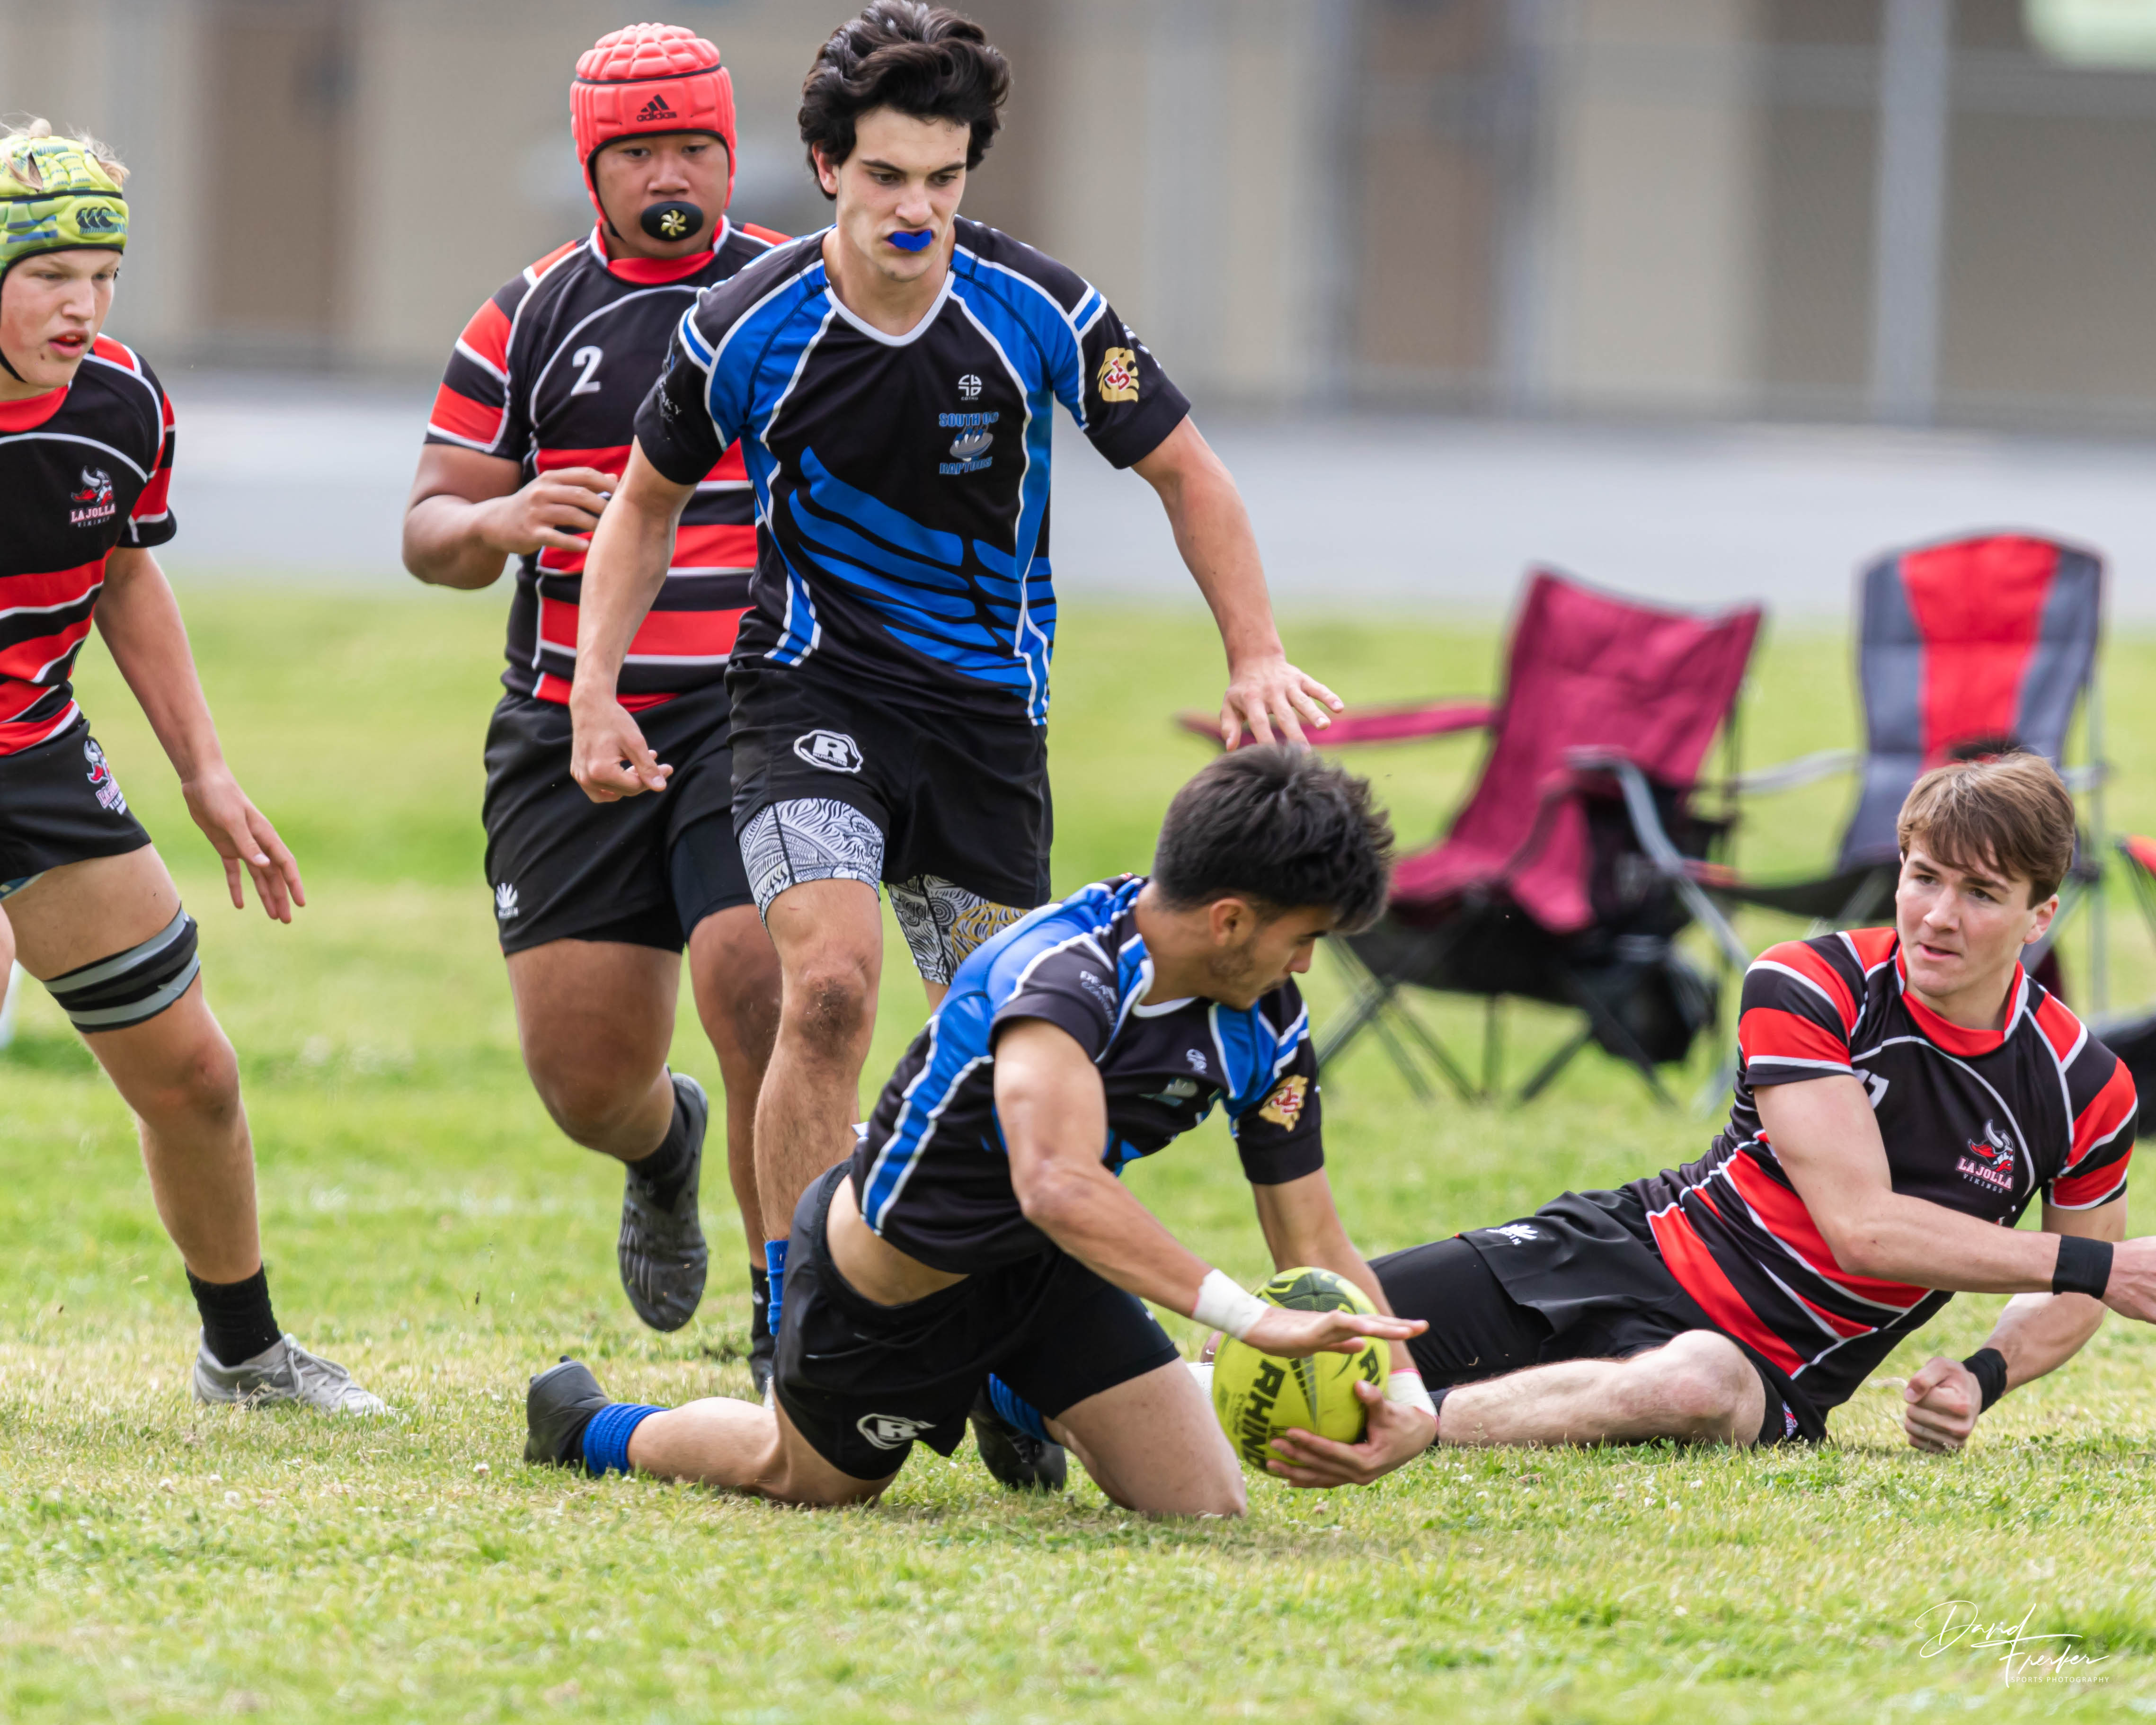 LaJollaRugby85